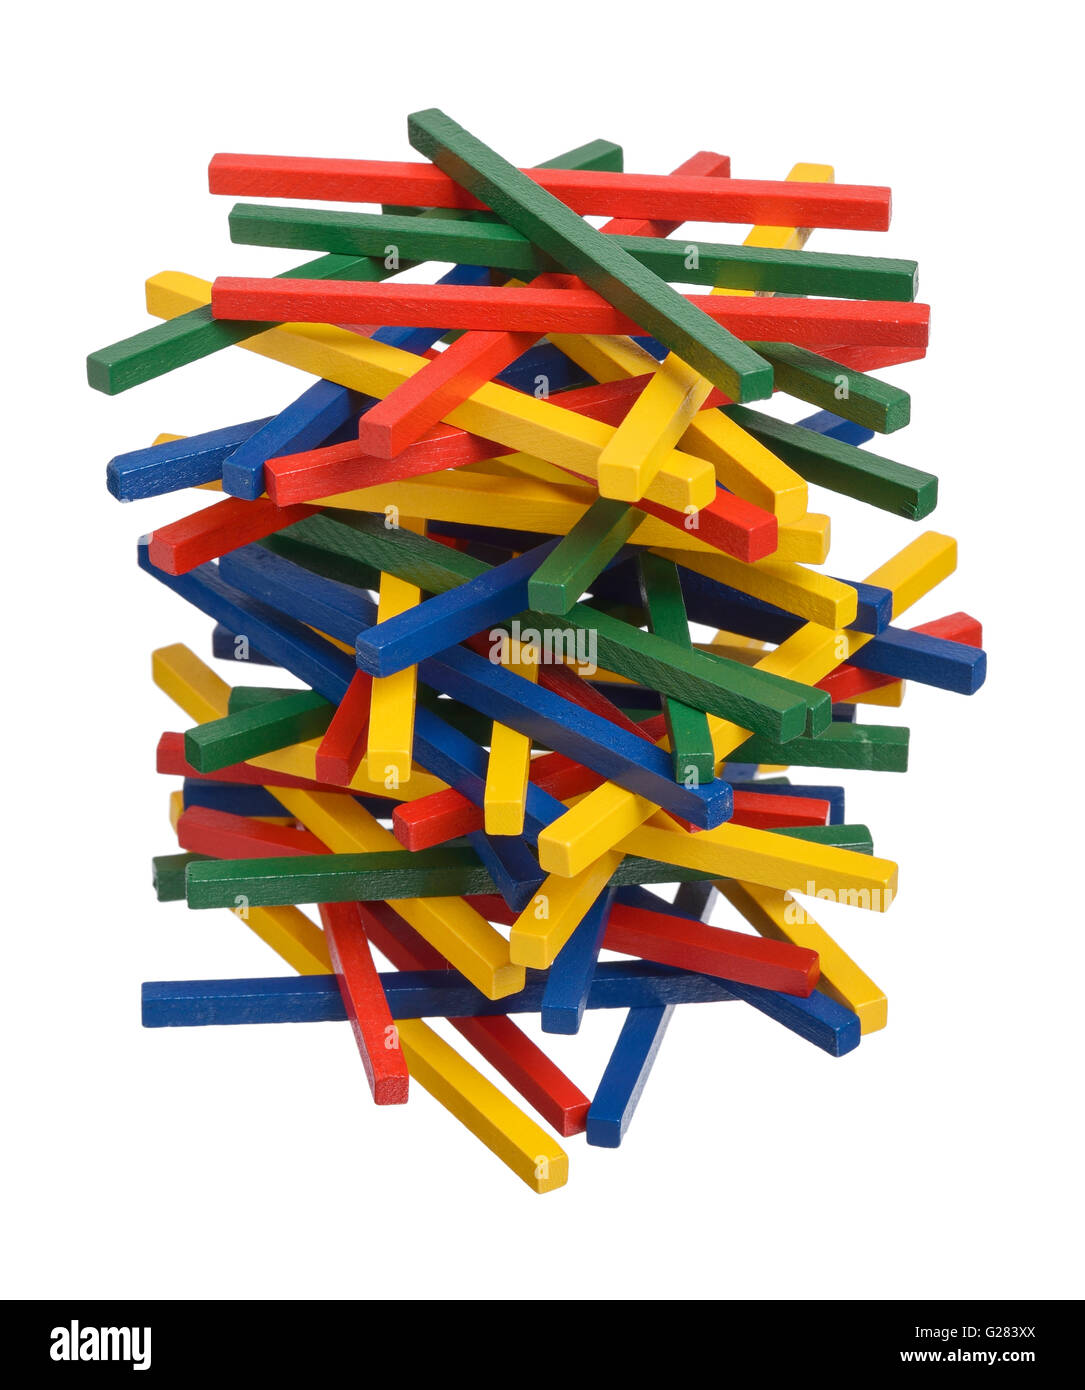 Stack of coloured wooden sticks - Stock Image